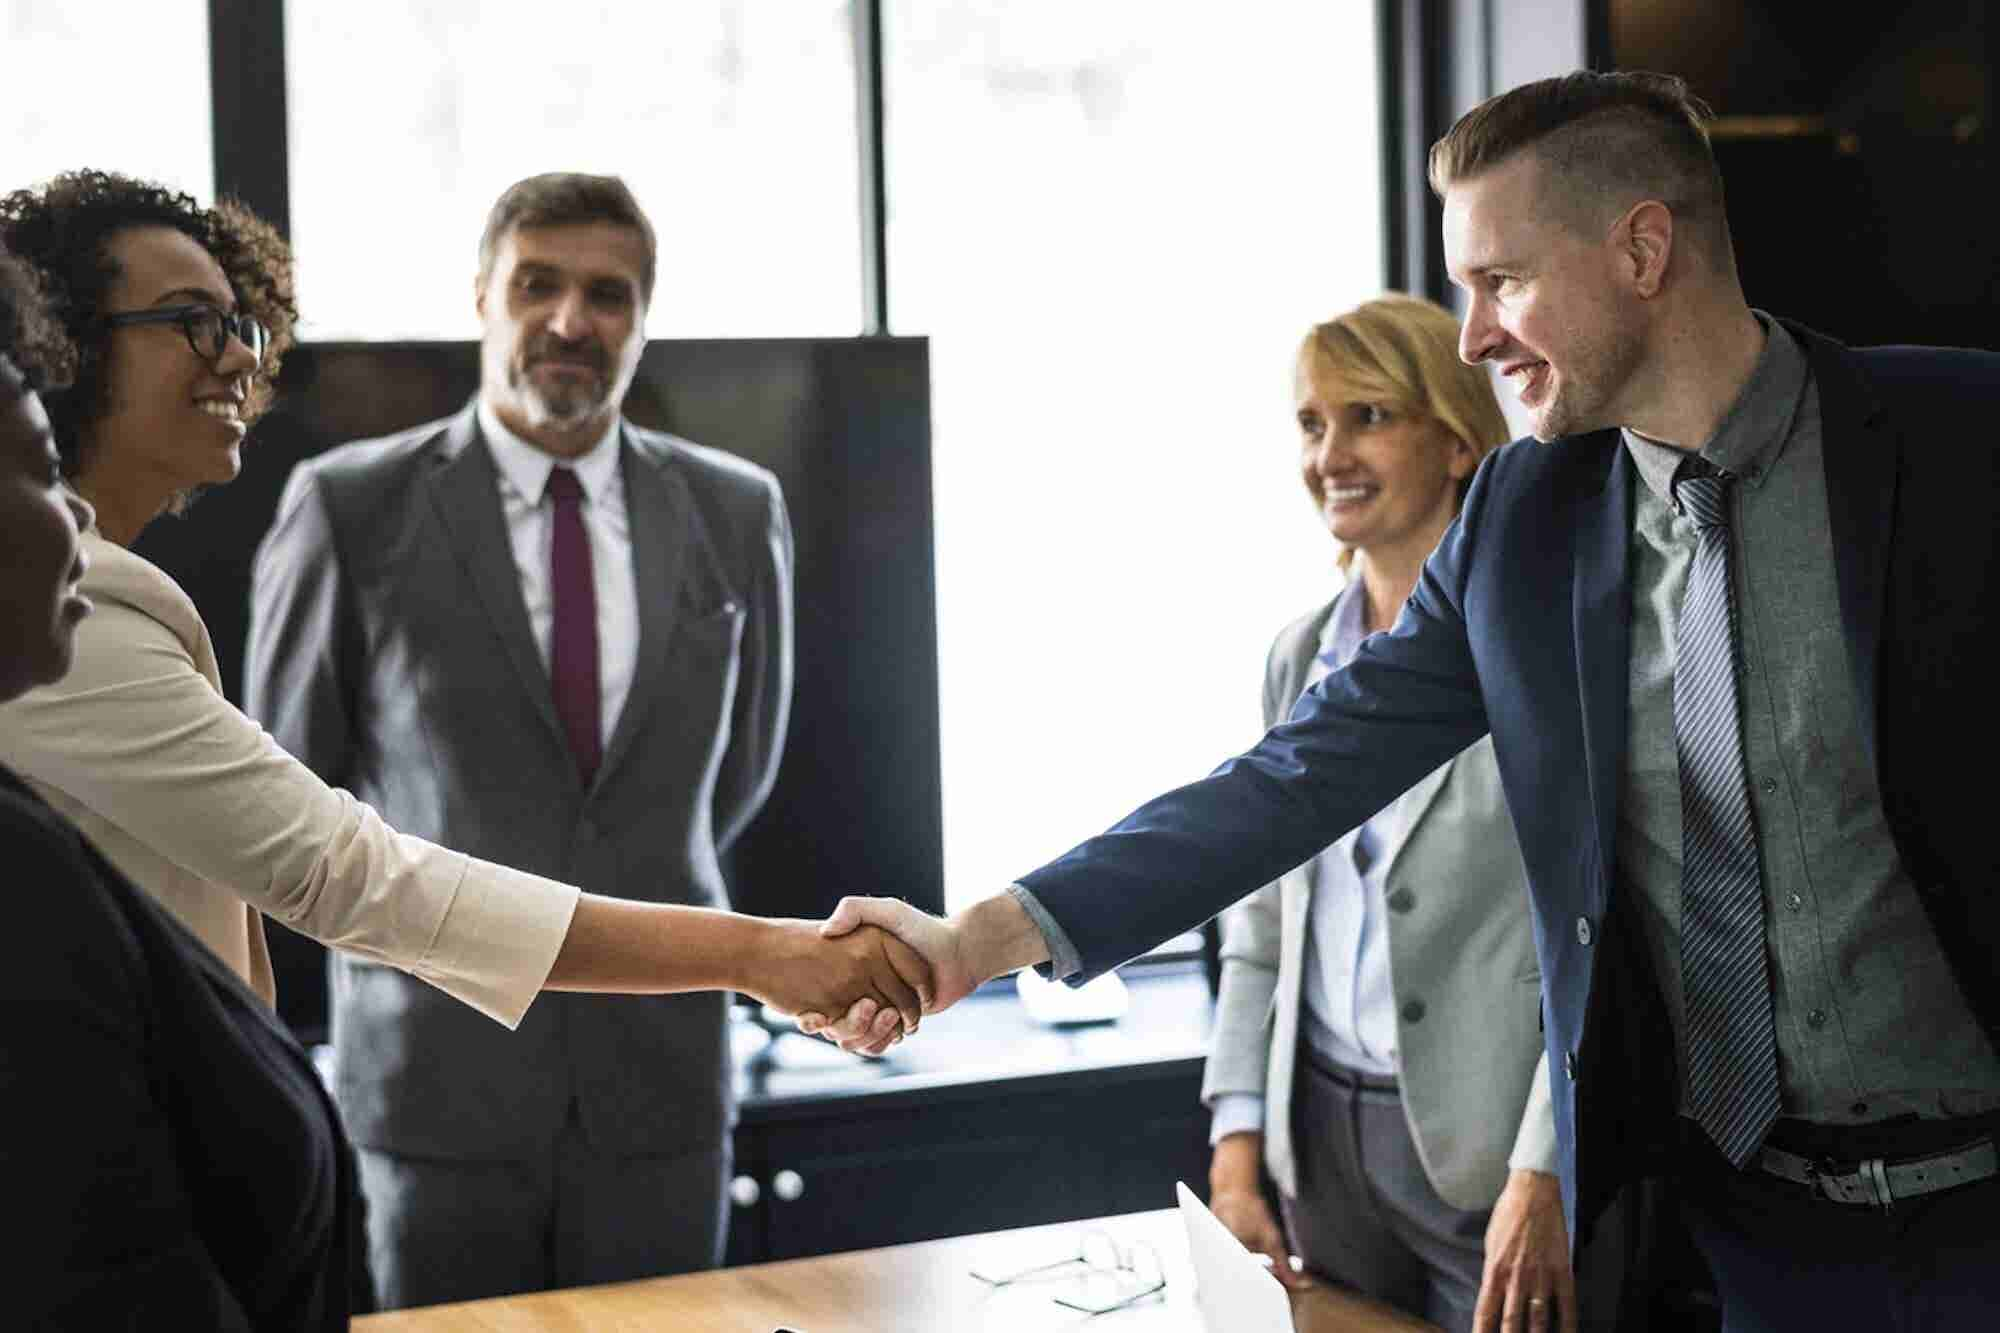 Hone Your Sales and Negotiation Skills with This $11 Online Class